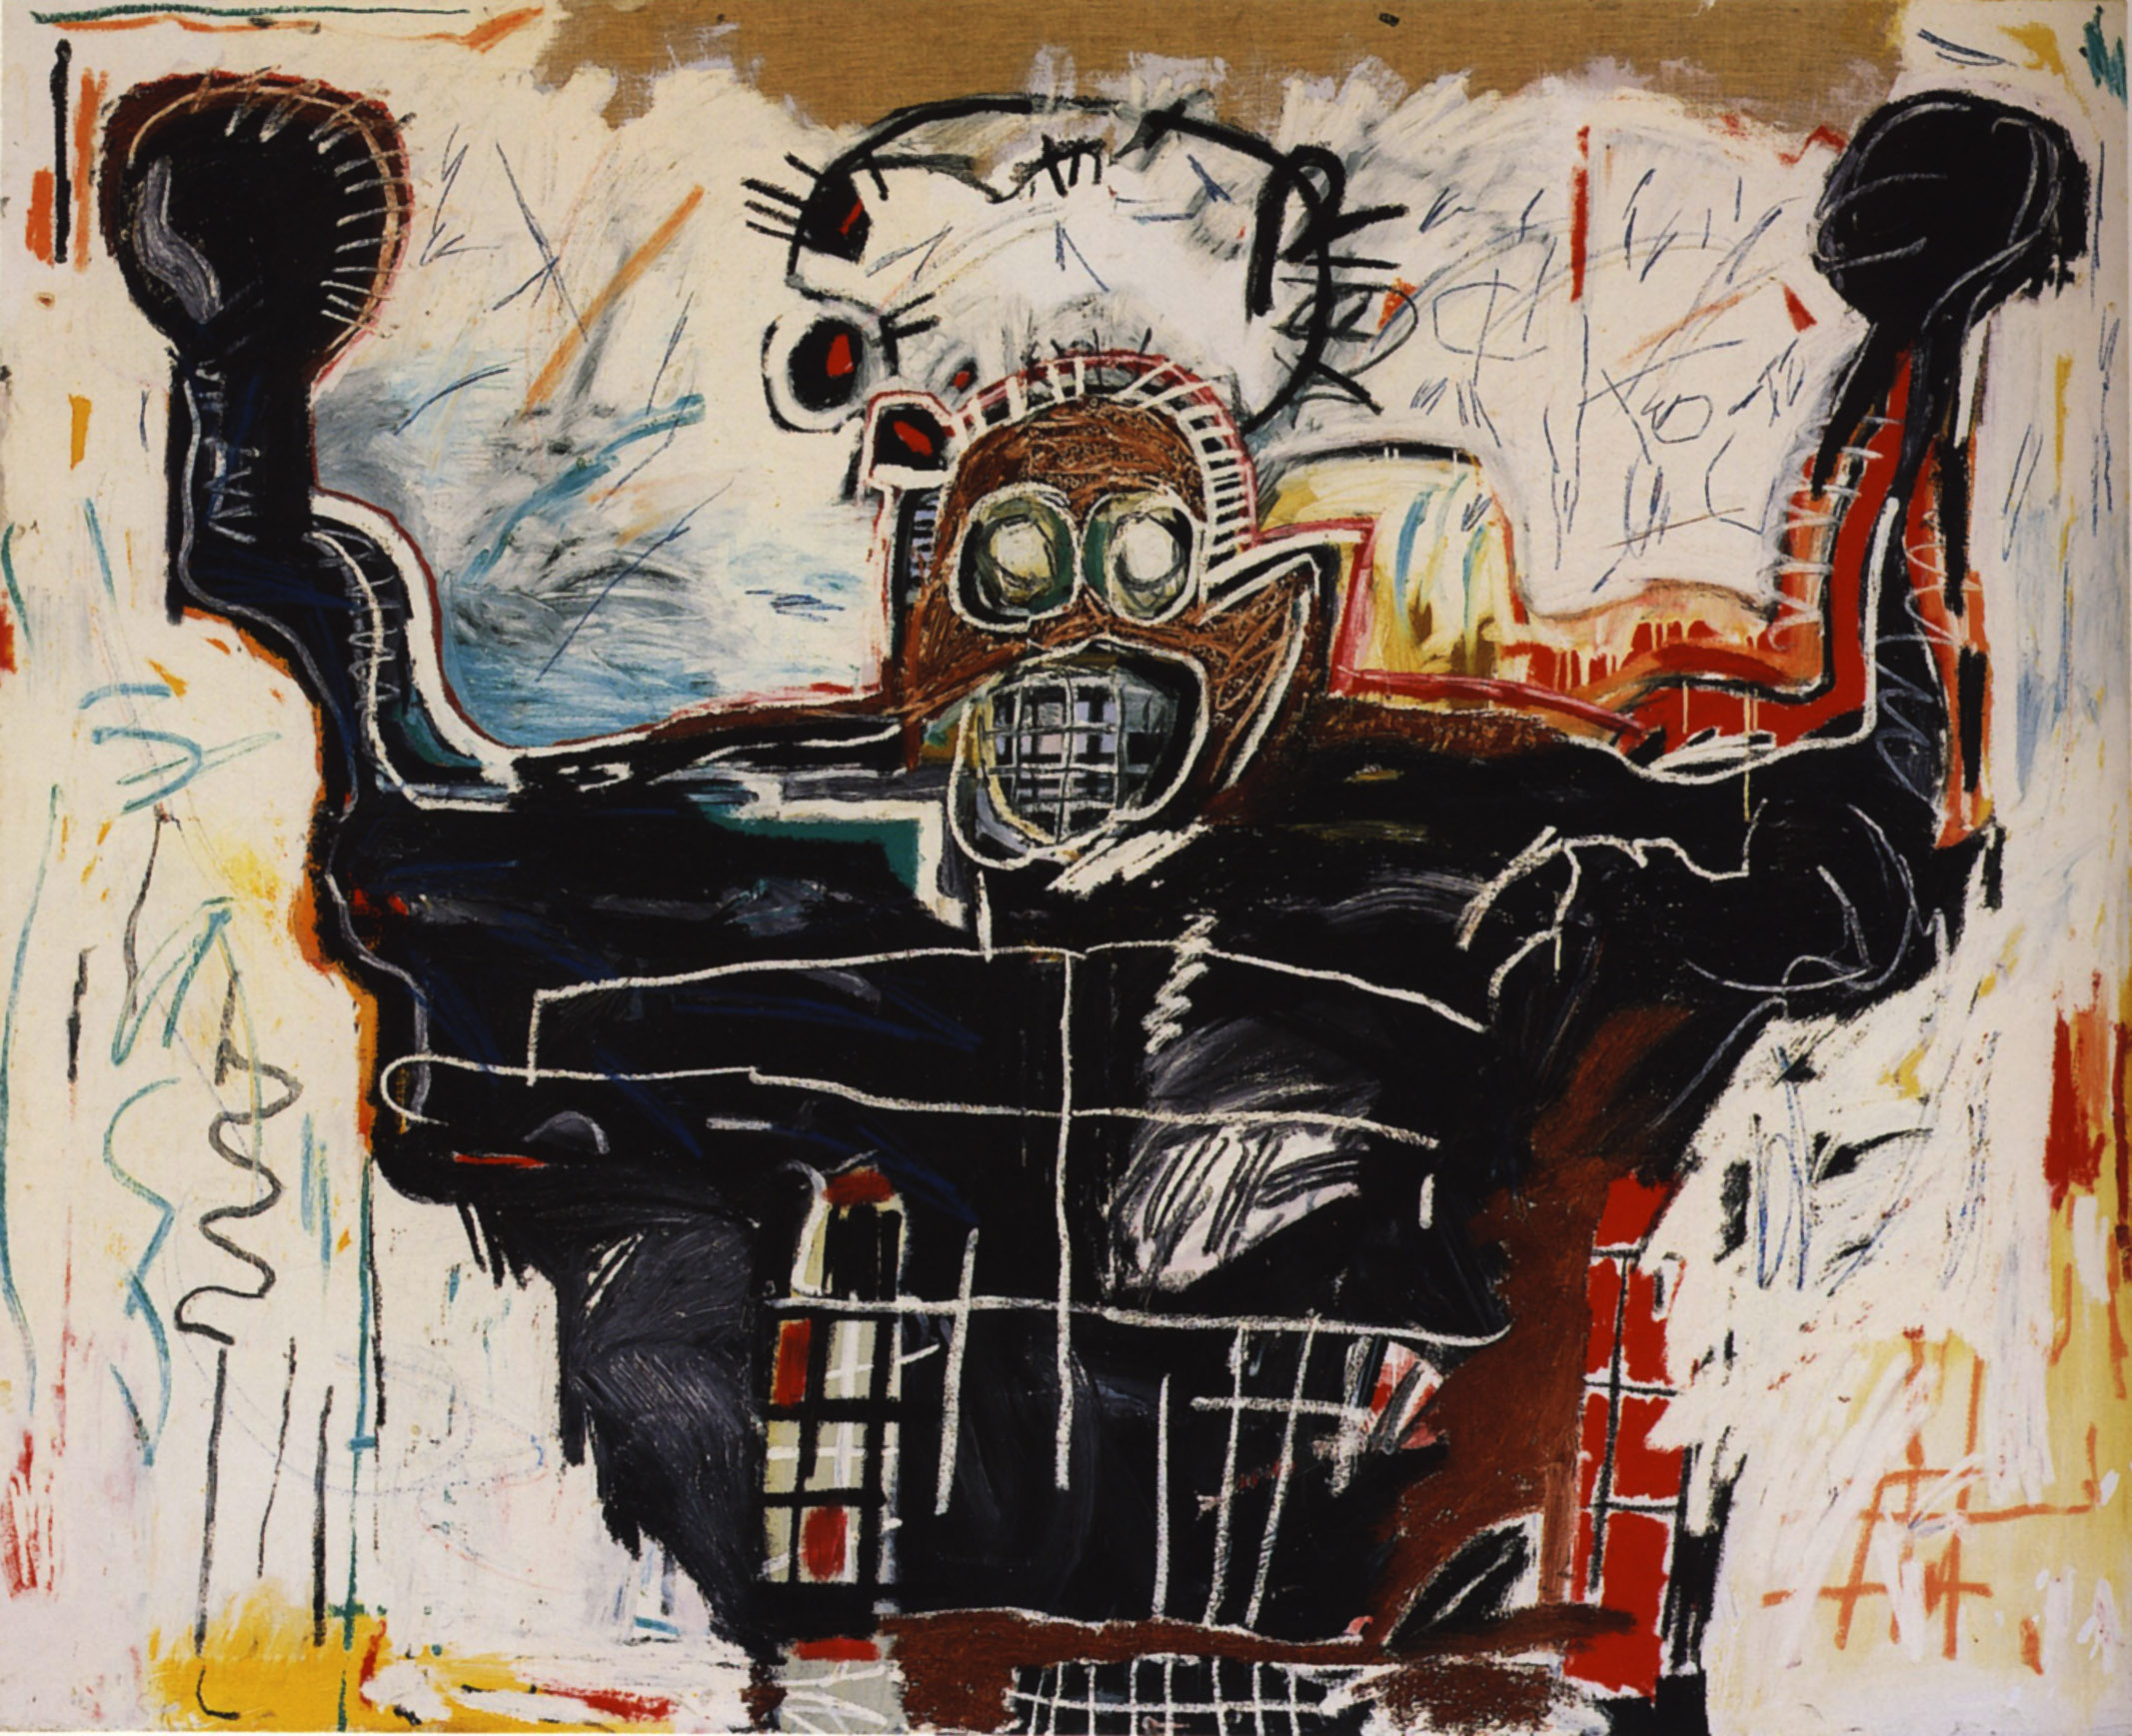 Jean-Michel Basquiat, Untitled (Boxer) Sold at Christie's for $13 522 500 2008 Post-War & Contemporary sale Image via Christie's